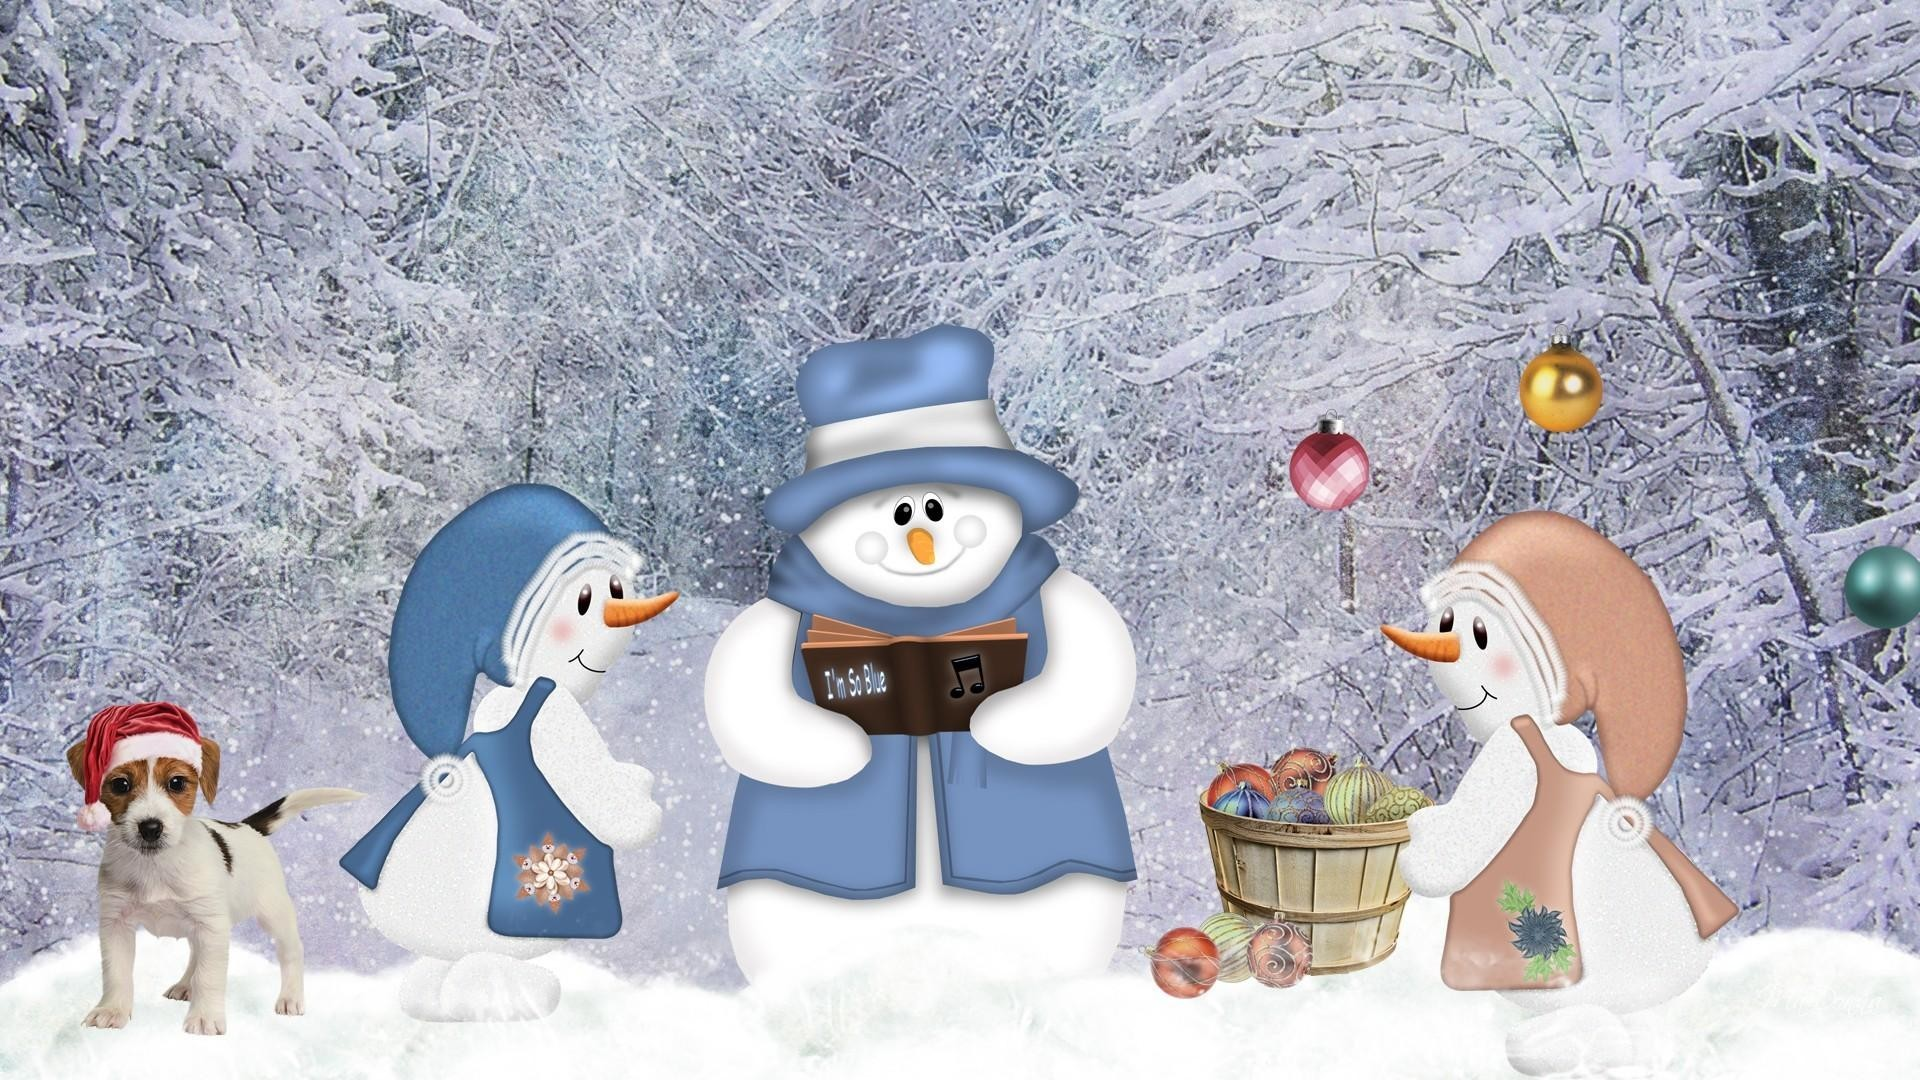 2880x1800 Snowman Widescreen Wallpaper 52518